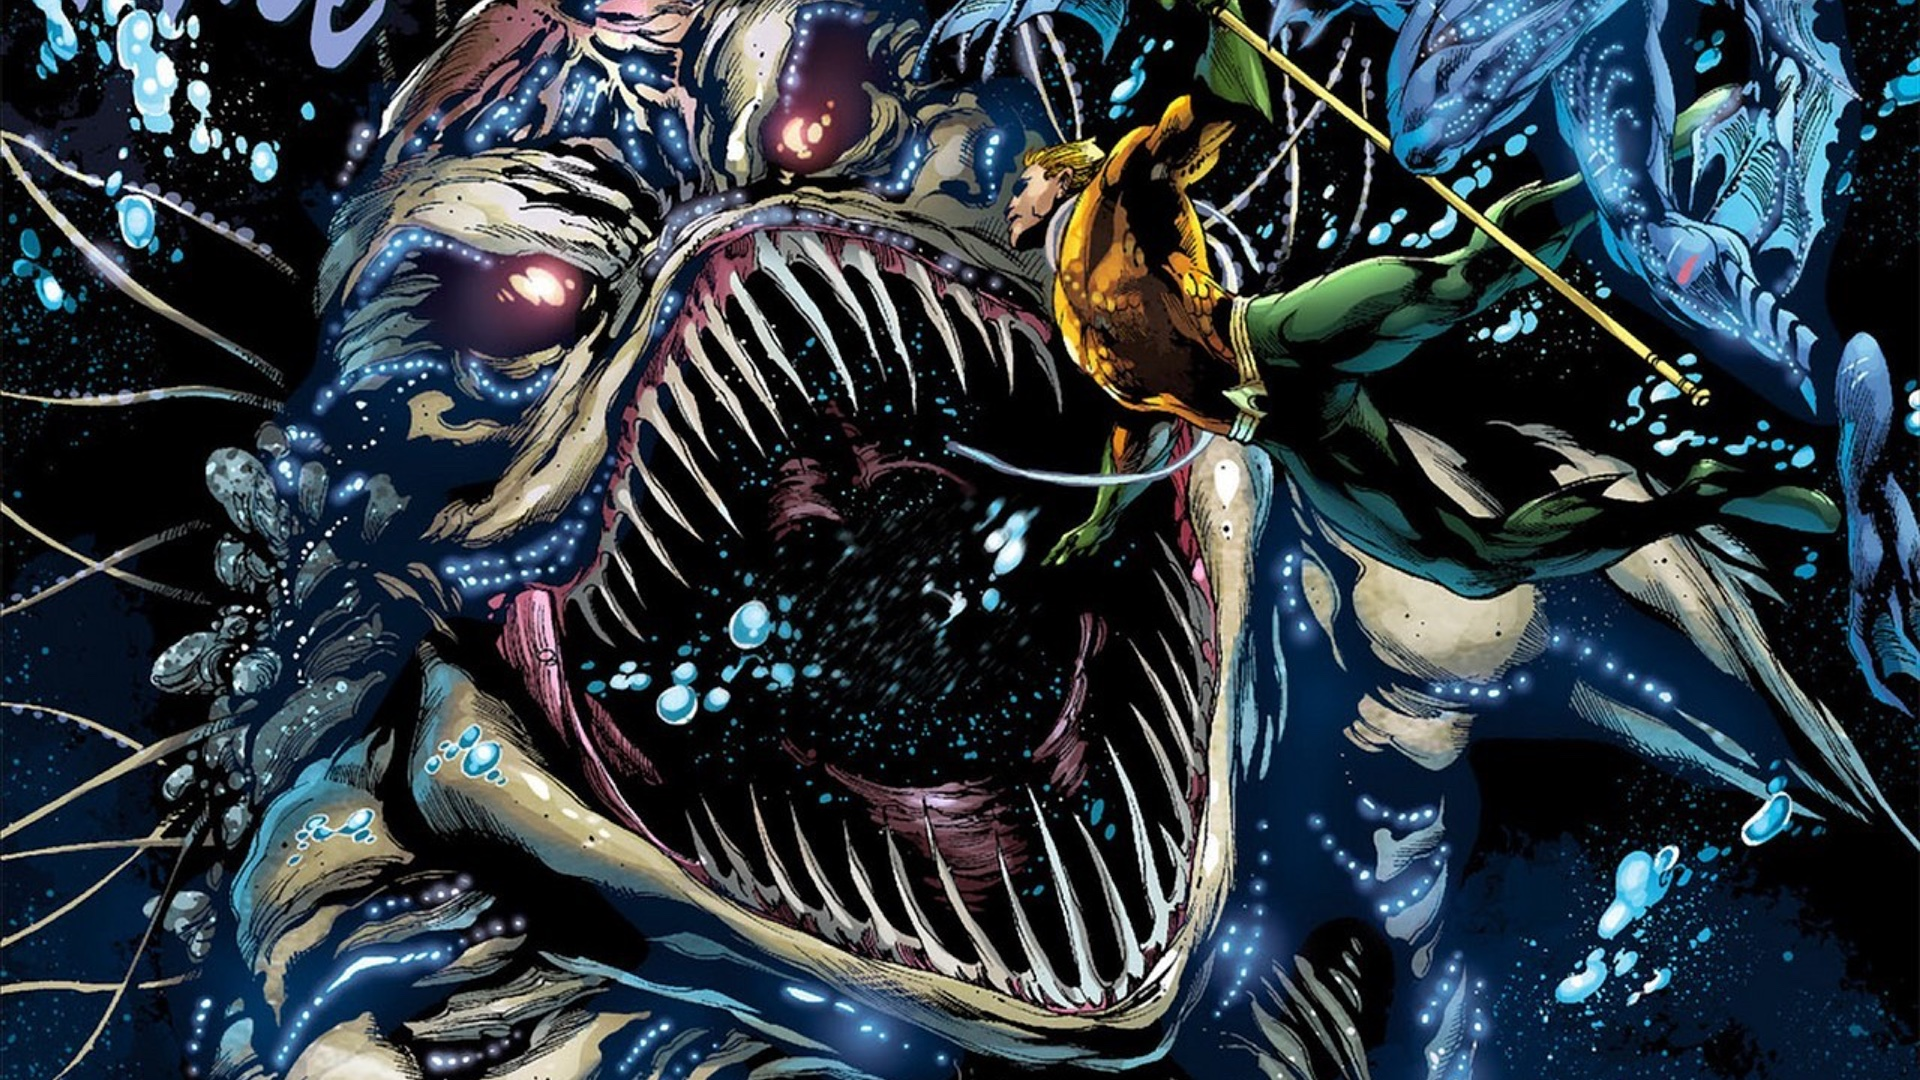 James Wan Says His Aquaman Will Be Cool Badass And Have Sea Batman V Superman Over The Weekend Was Introduced Into Dc Extended Universe In It One Of Most Disappointing Moments Movie